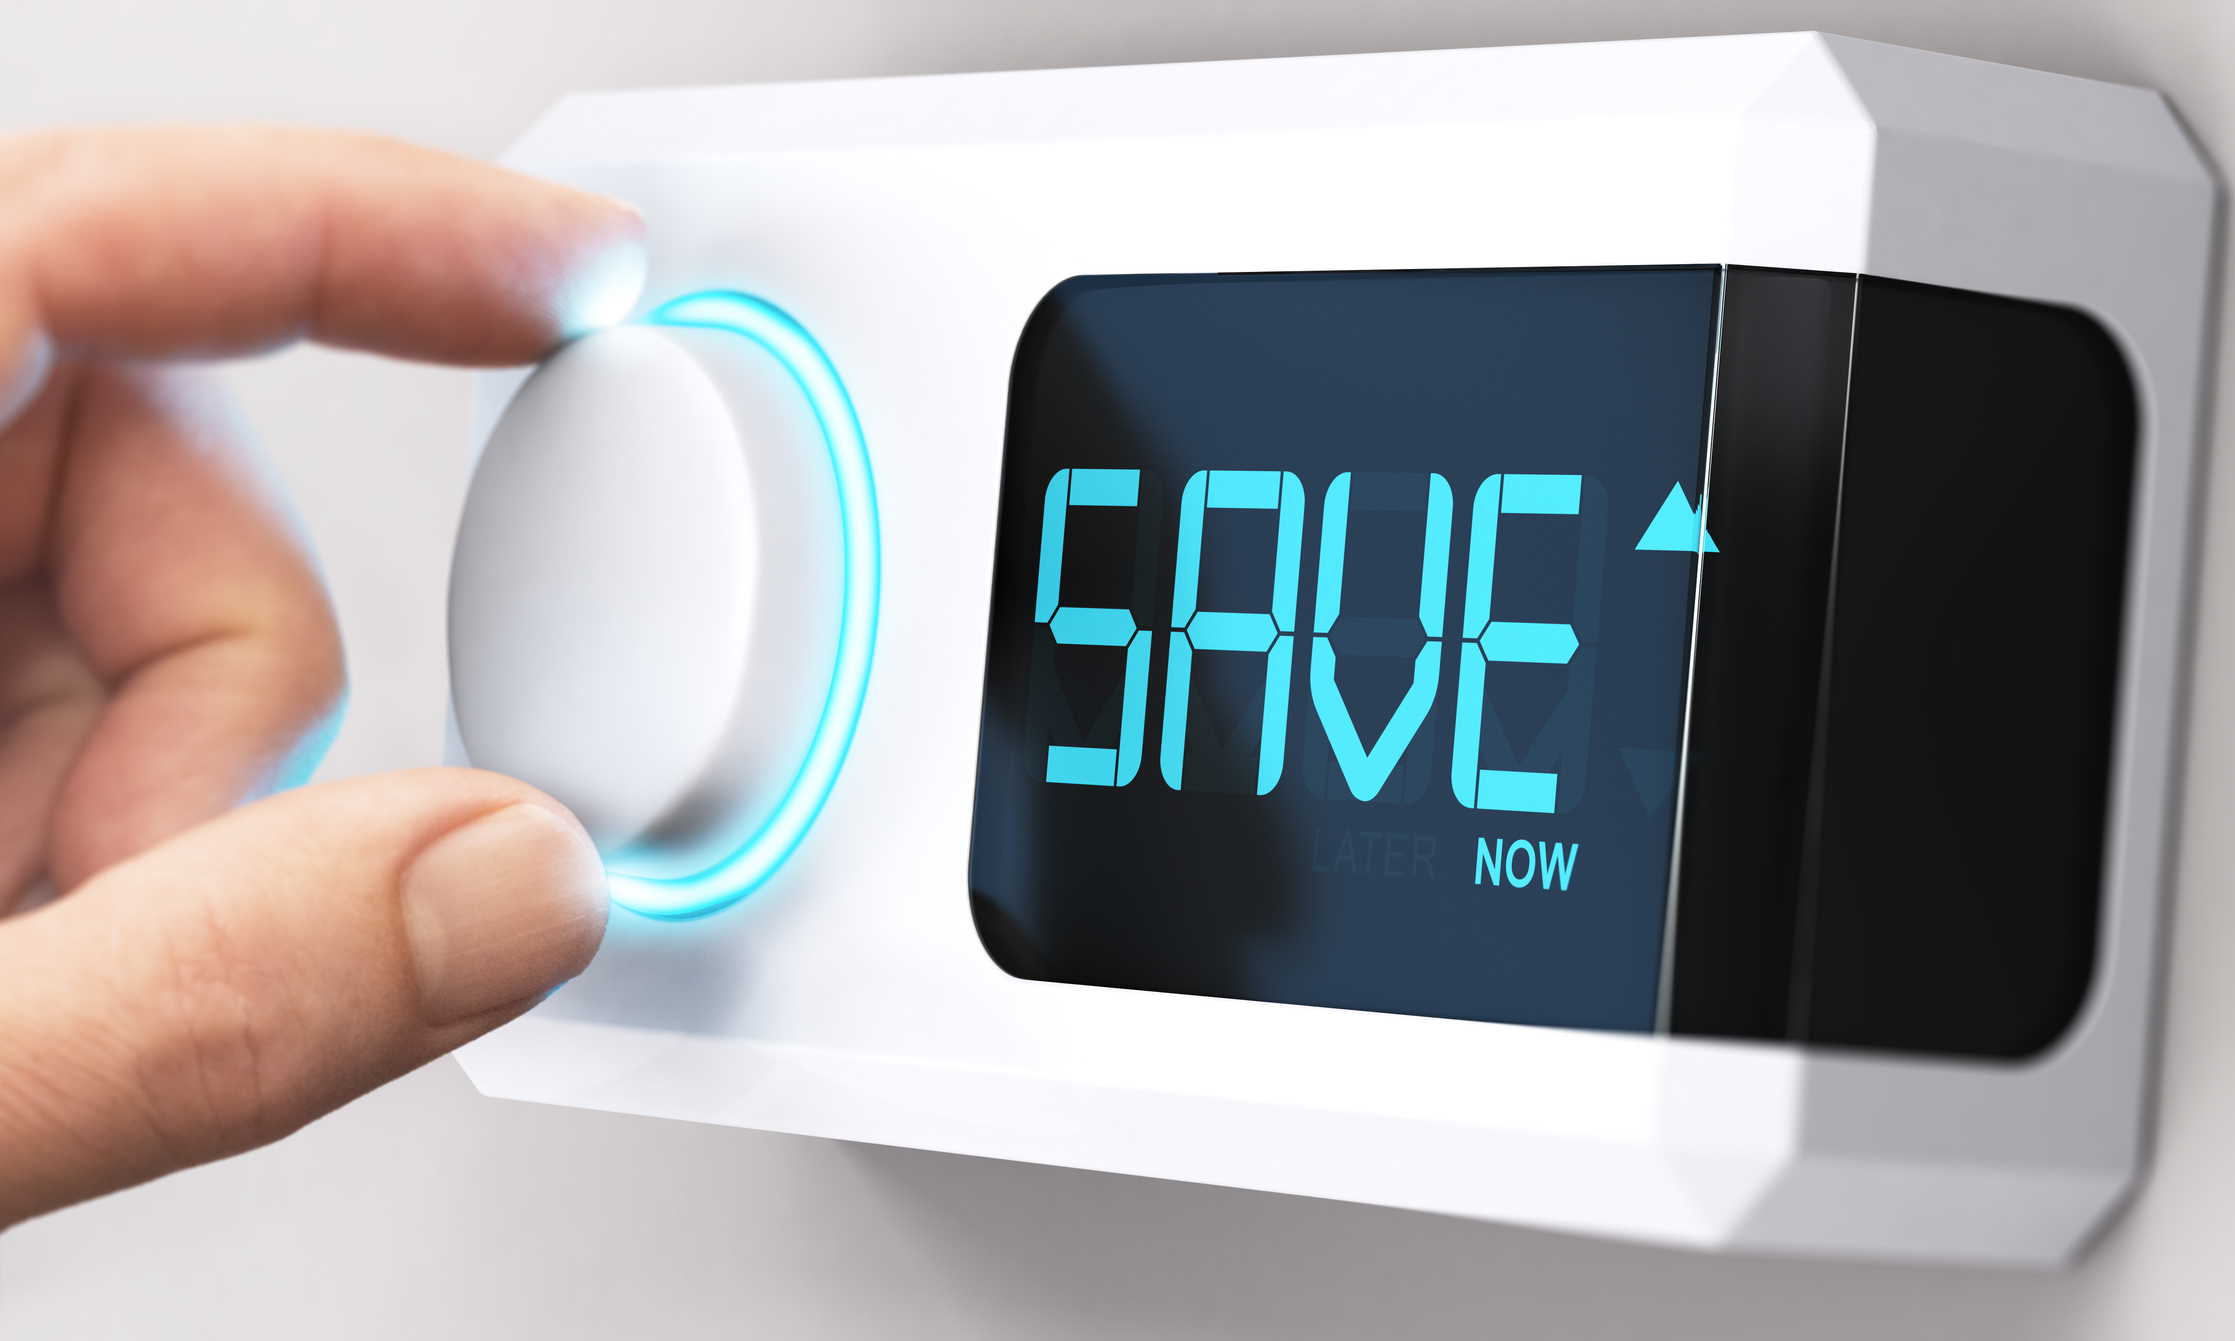 Hand turning a thermostat knob to increase savings by decreasing energy consumption. Composite image between a hand photography and a 3D background representing condos for sale in bradenton fl.